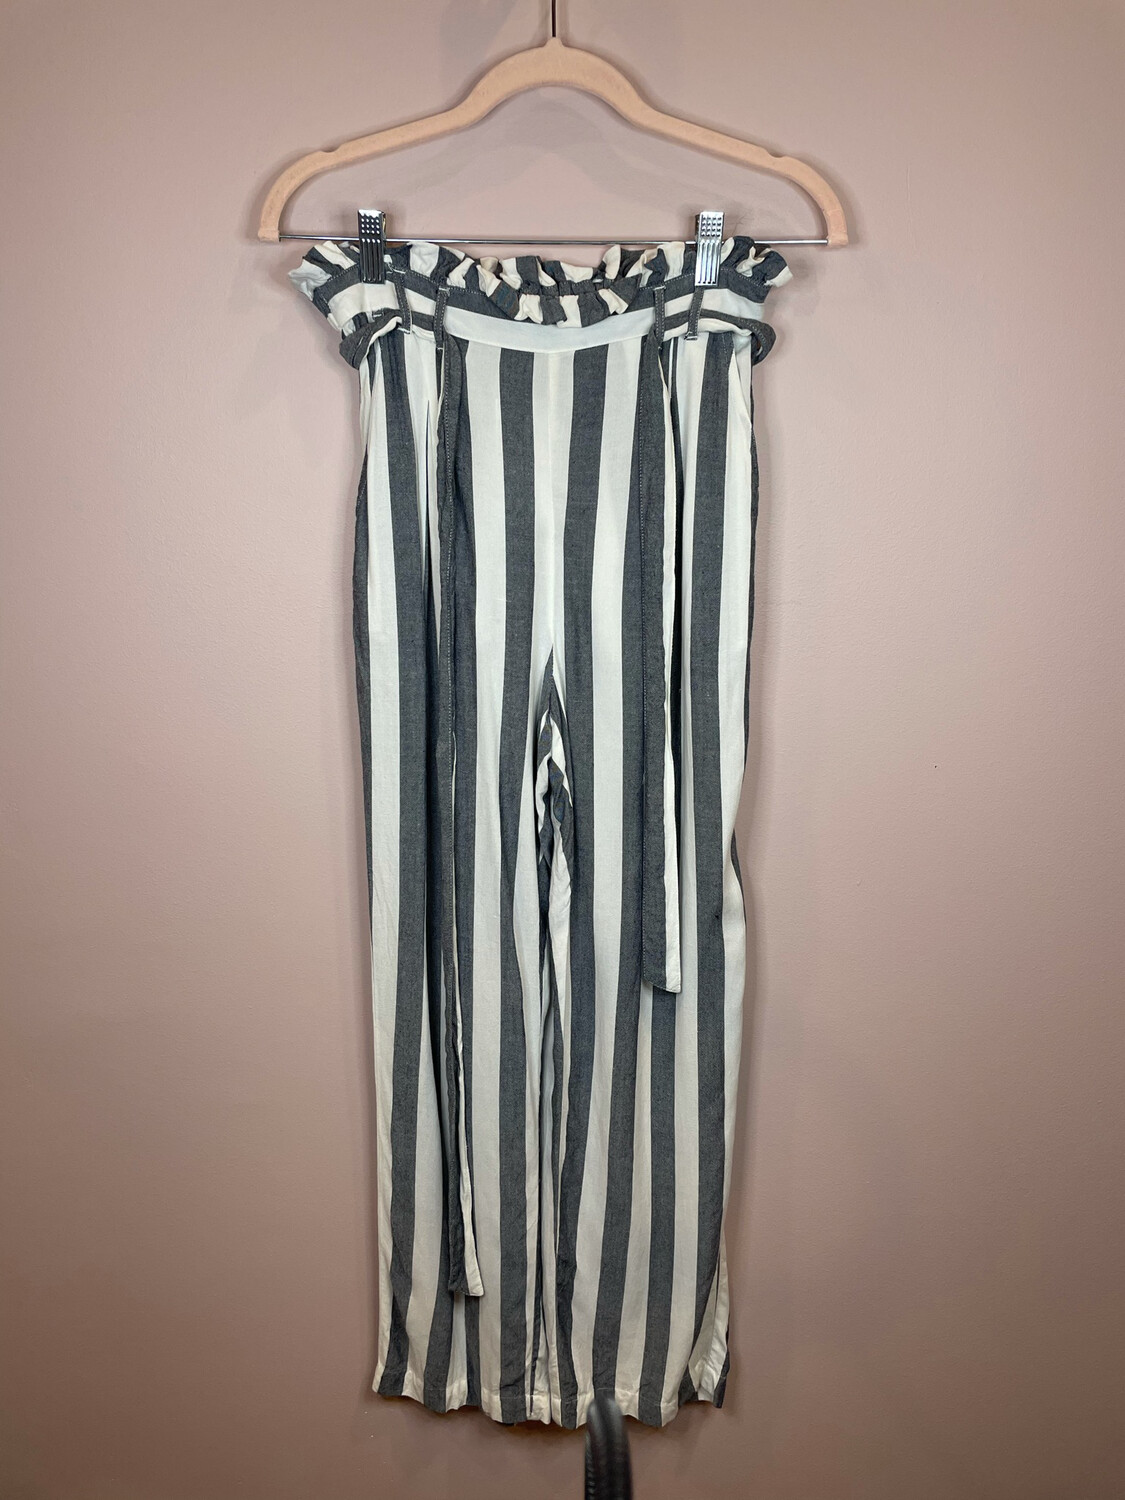 American Eagle White & Chambray Striped Belted Pants - S